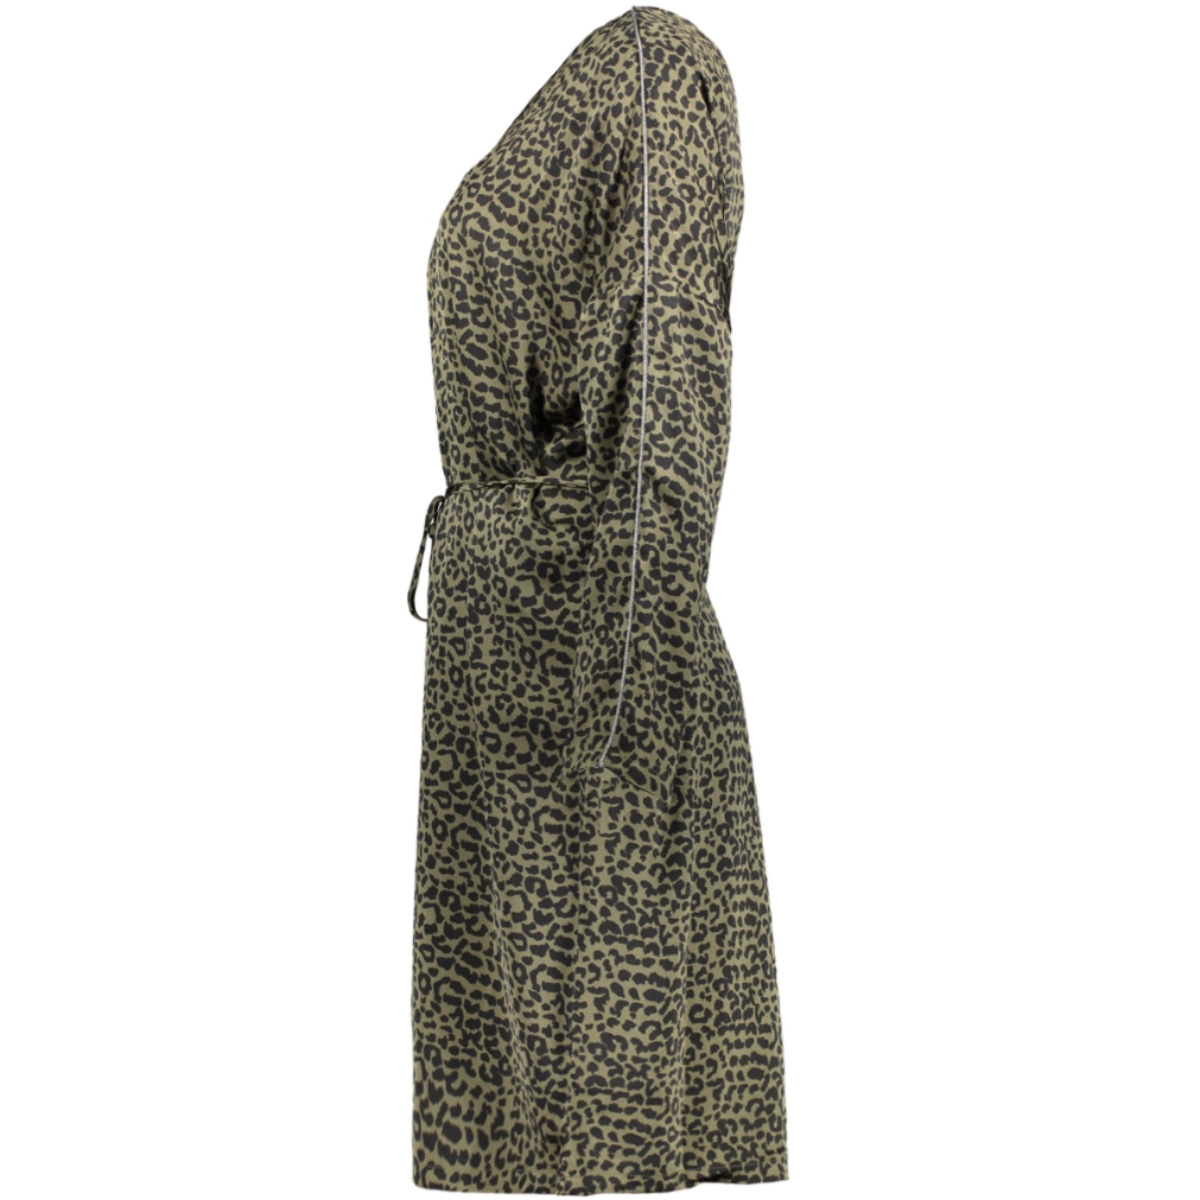 woven dress on knee 30501668 saint tropez jurk 18 0515 musk